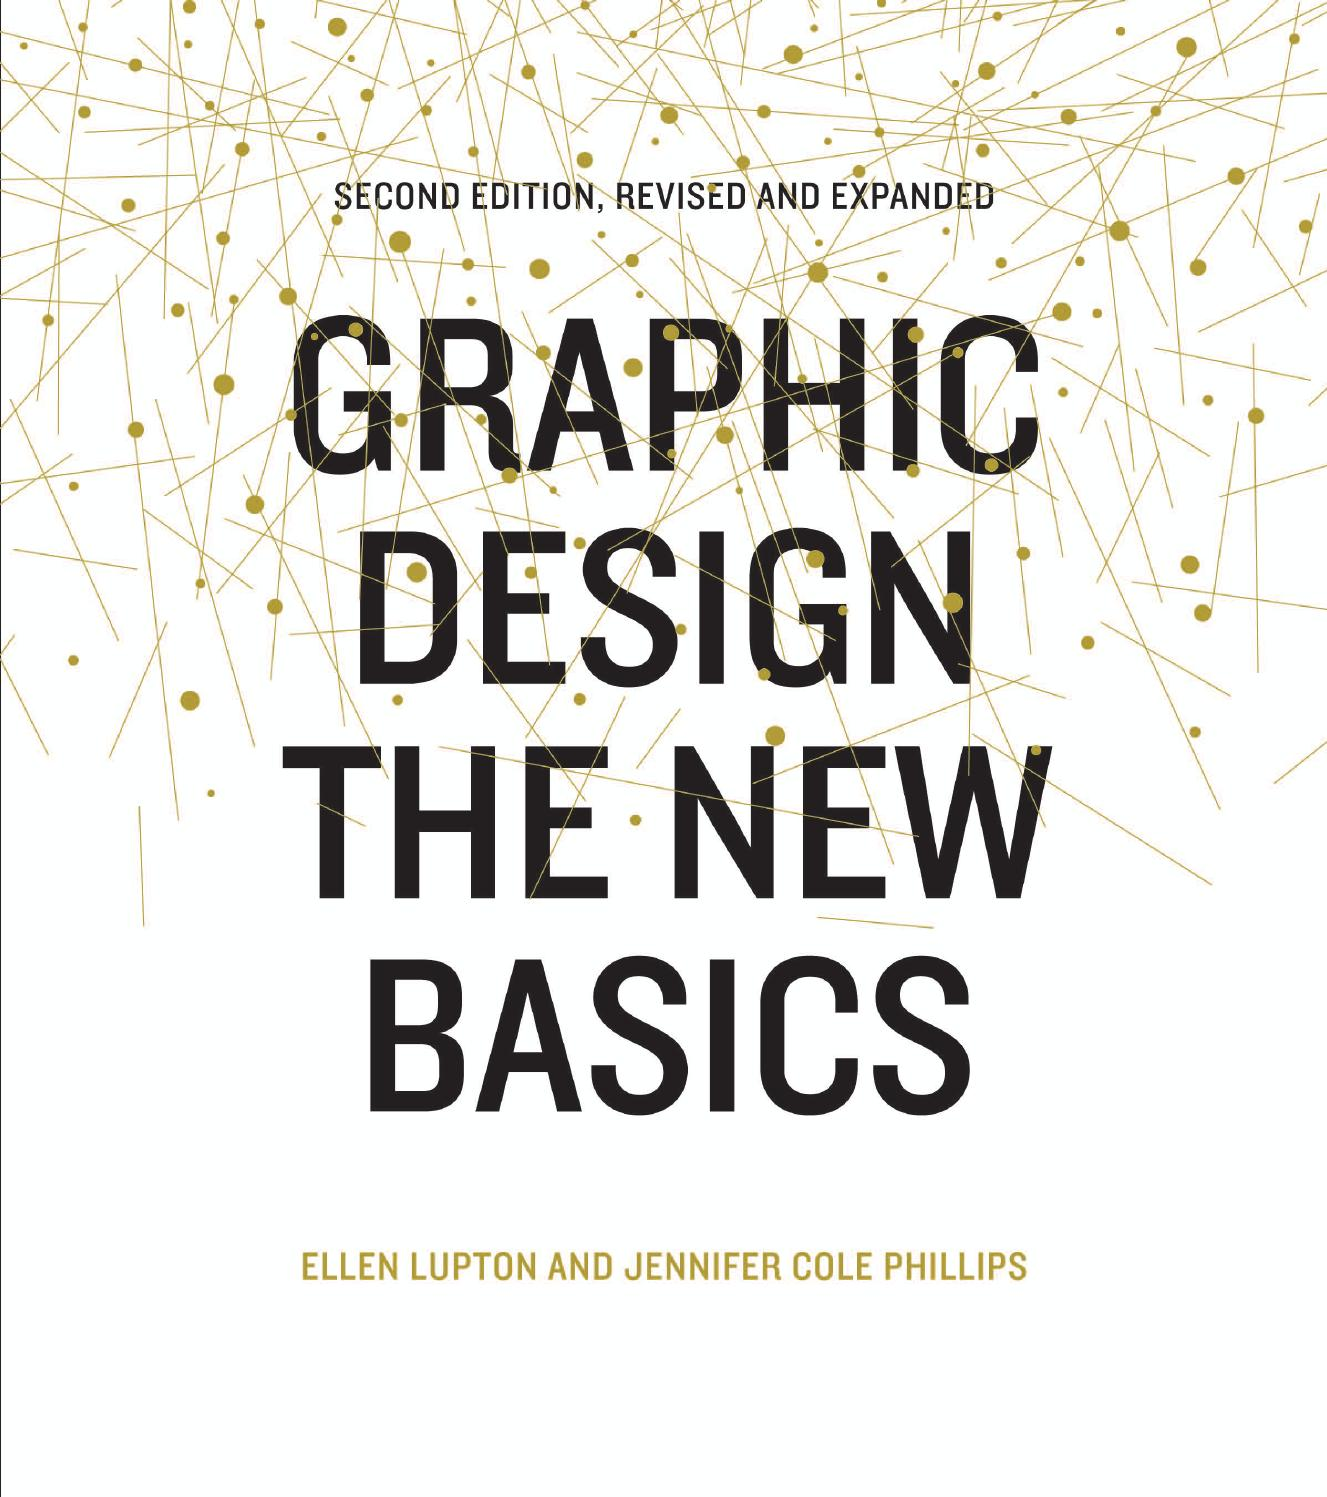 Graphic Design The New Basics by Princeton Architectural